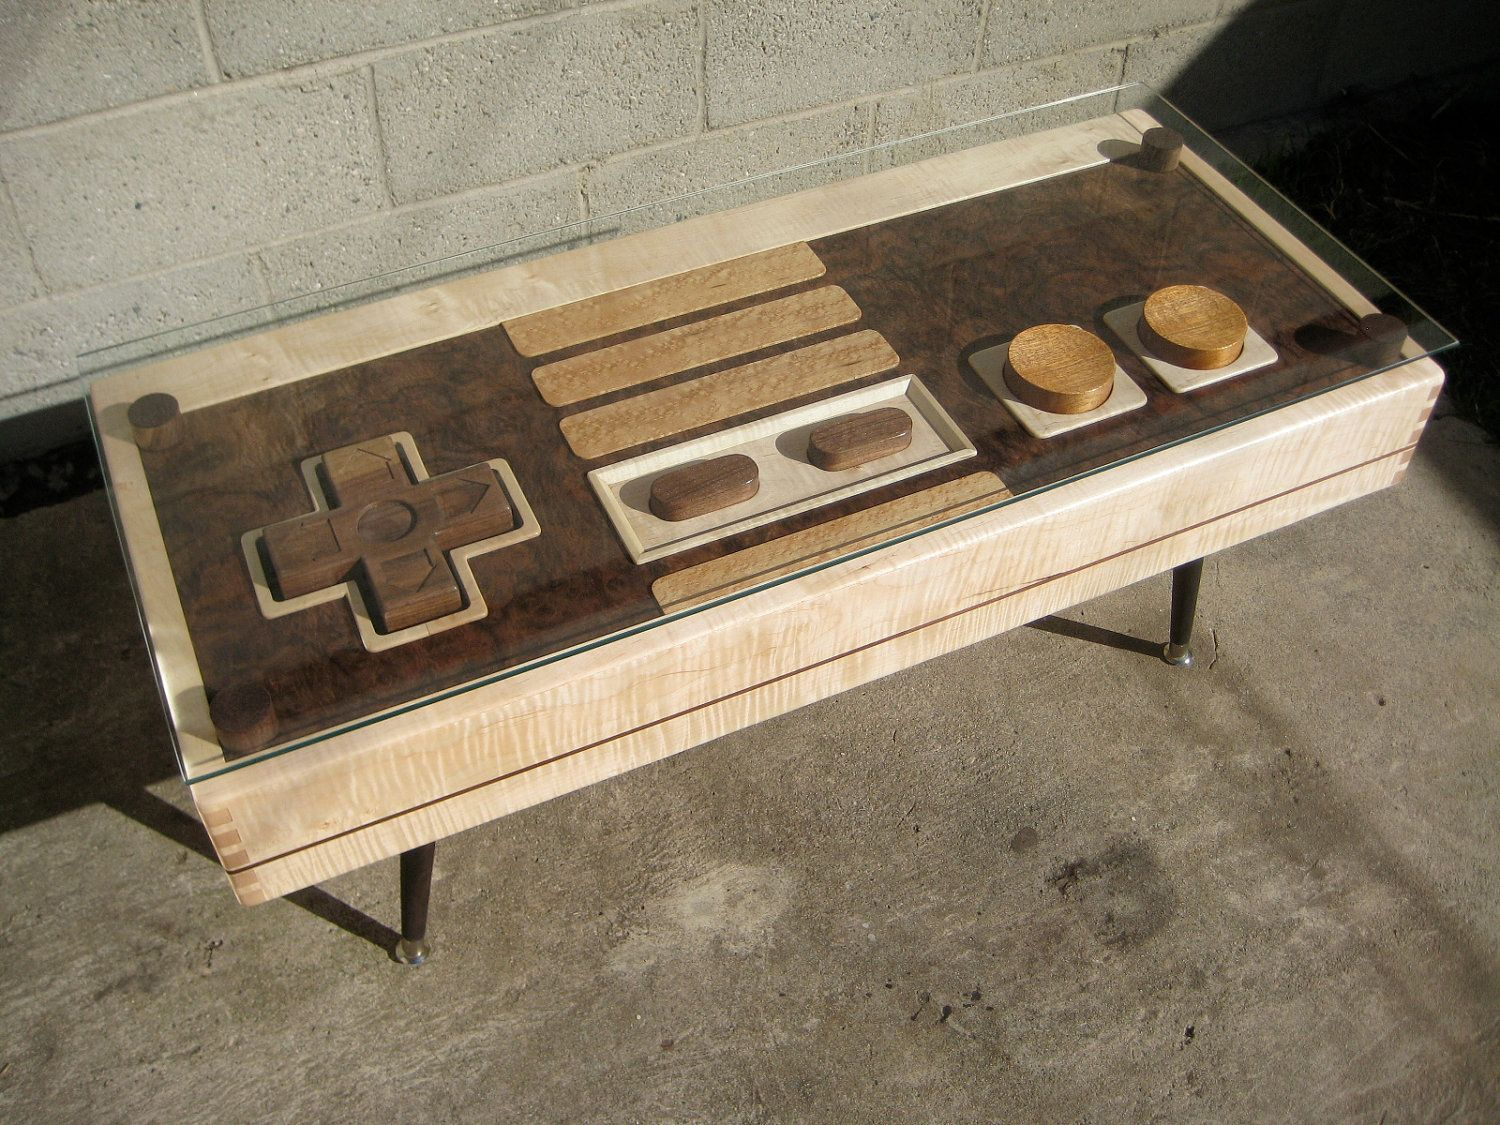 Geek Gifts Vhs And Fully Functional Nintendo Controller Coffee Tables Collider